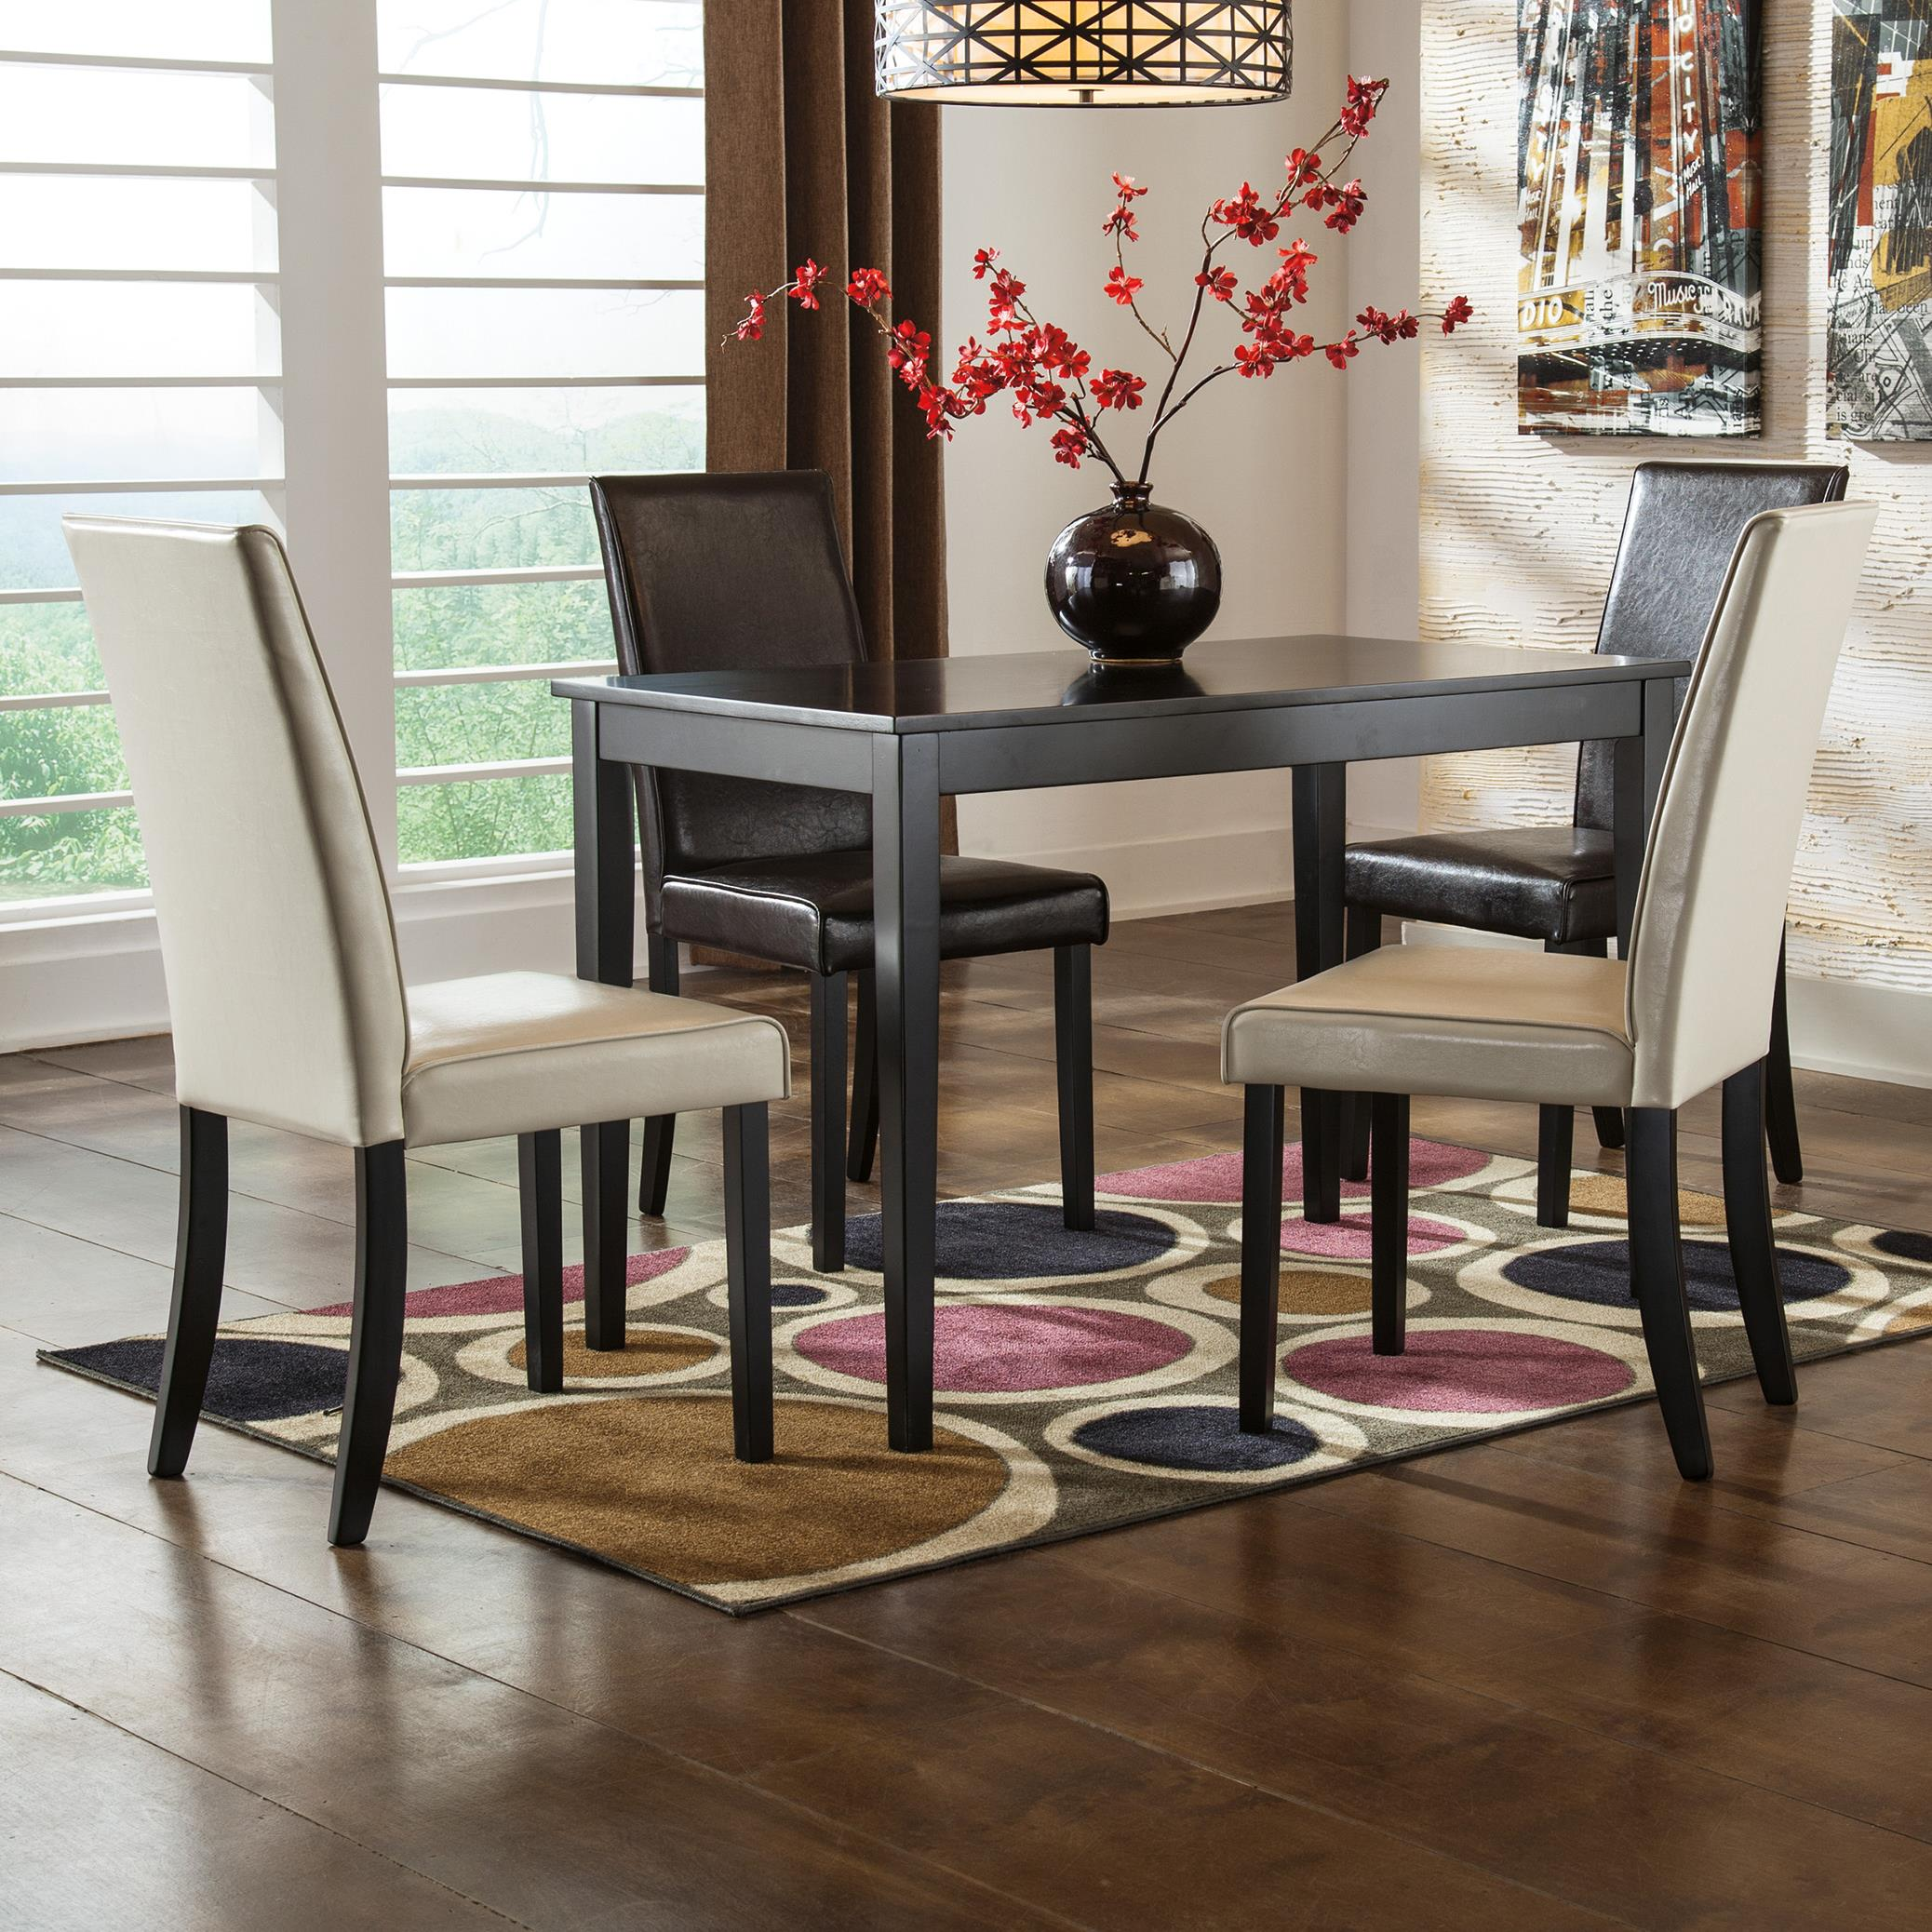 Signature Design by Ashley Kimonte 5-Piece Rectangular Table Set - Item Number: D250-25+2x02+2x01